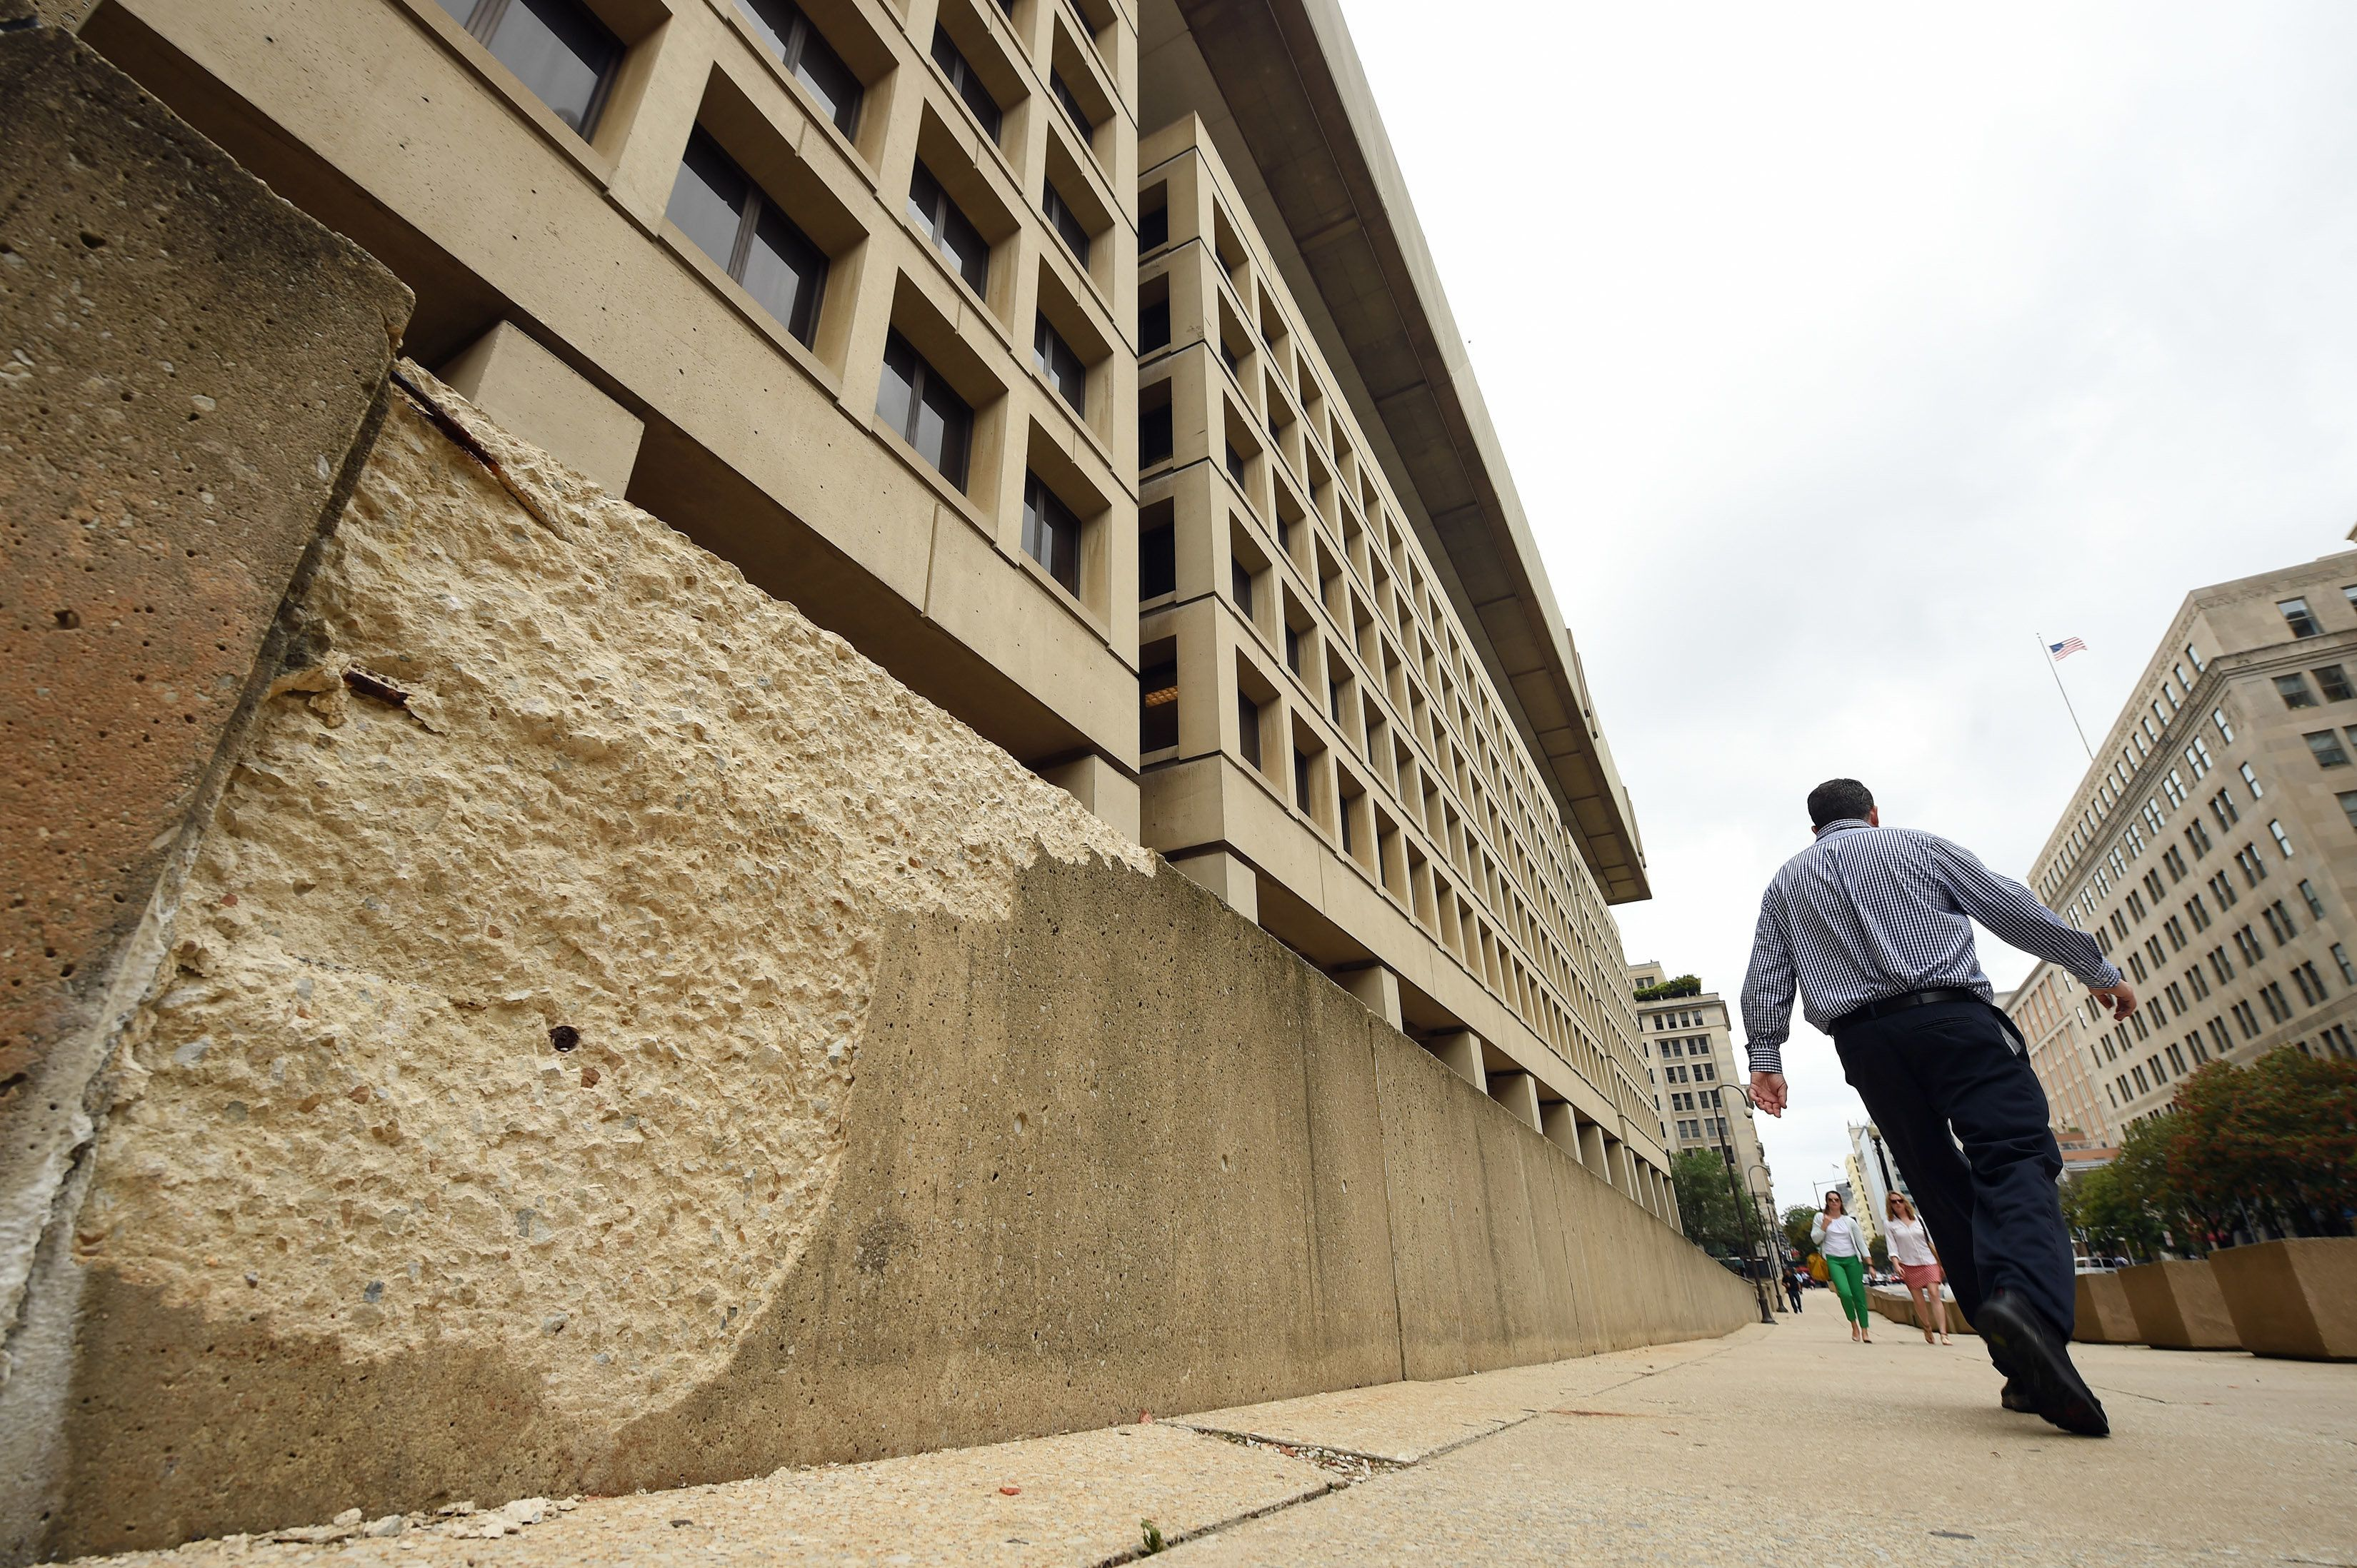 WASHINGTON, DC - AUGUST 20: A damaged wall surrounding the exterior of the J. Edgar Hoover Building, which is the headquarters of the FBI is seen on Thursday August 20, 2015 in Washington, DC. The agency is looking for a new location for their headquarters. (Photo by Matt McClain/The Washington Post via Getty Images)